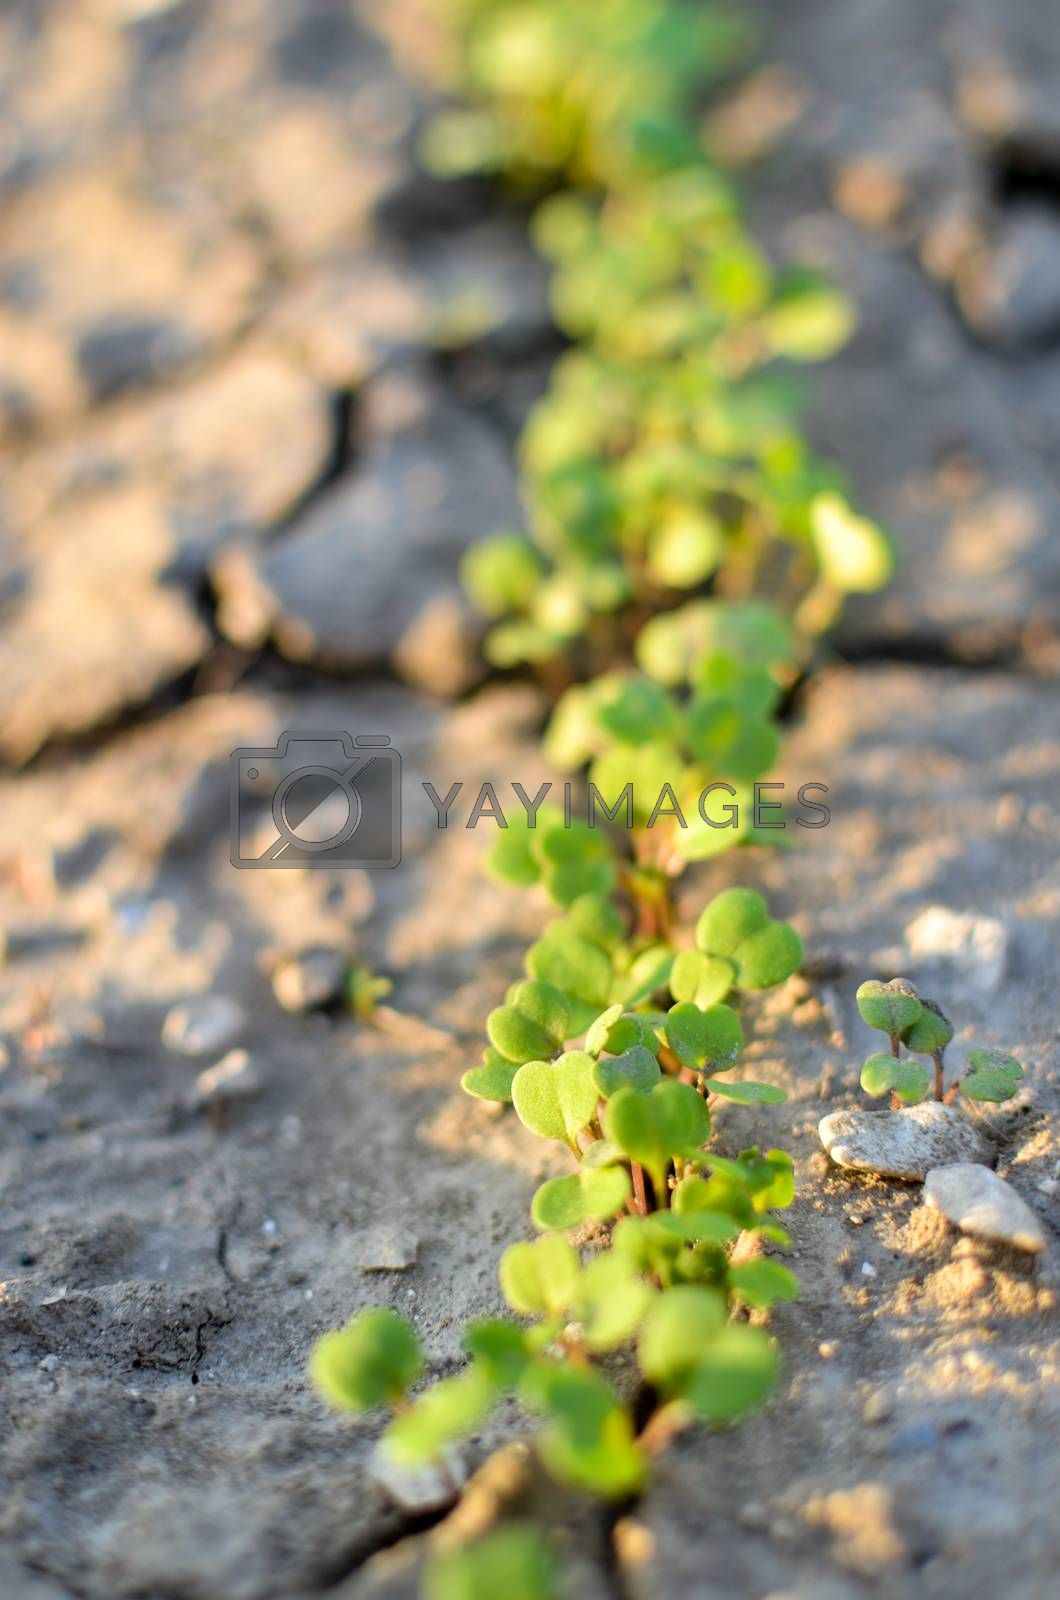 Fresh green baby leaves salad lettuce growing in the field